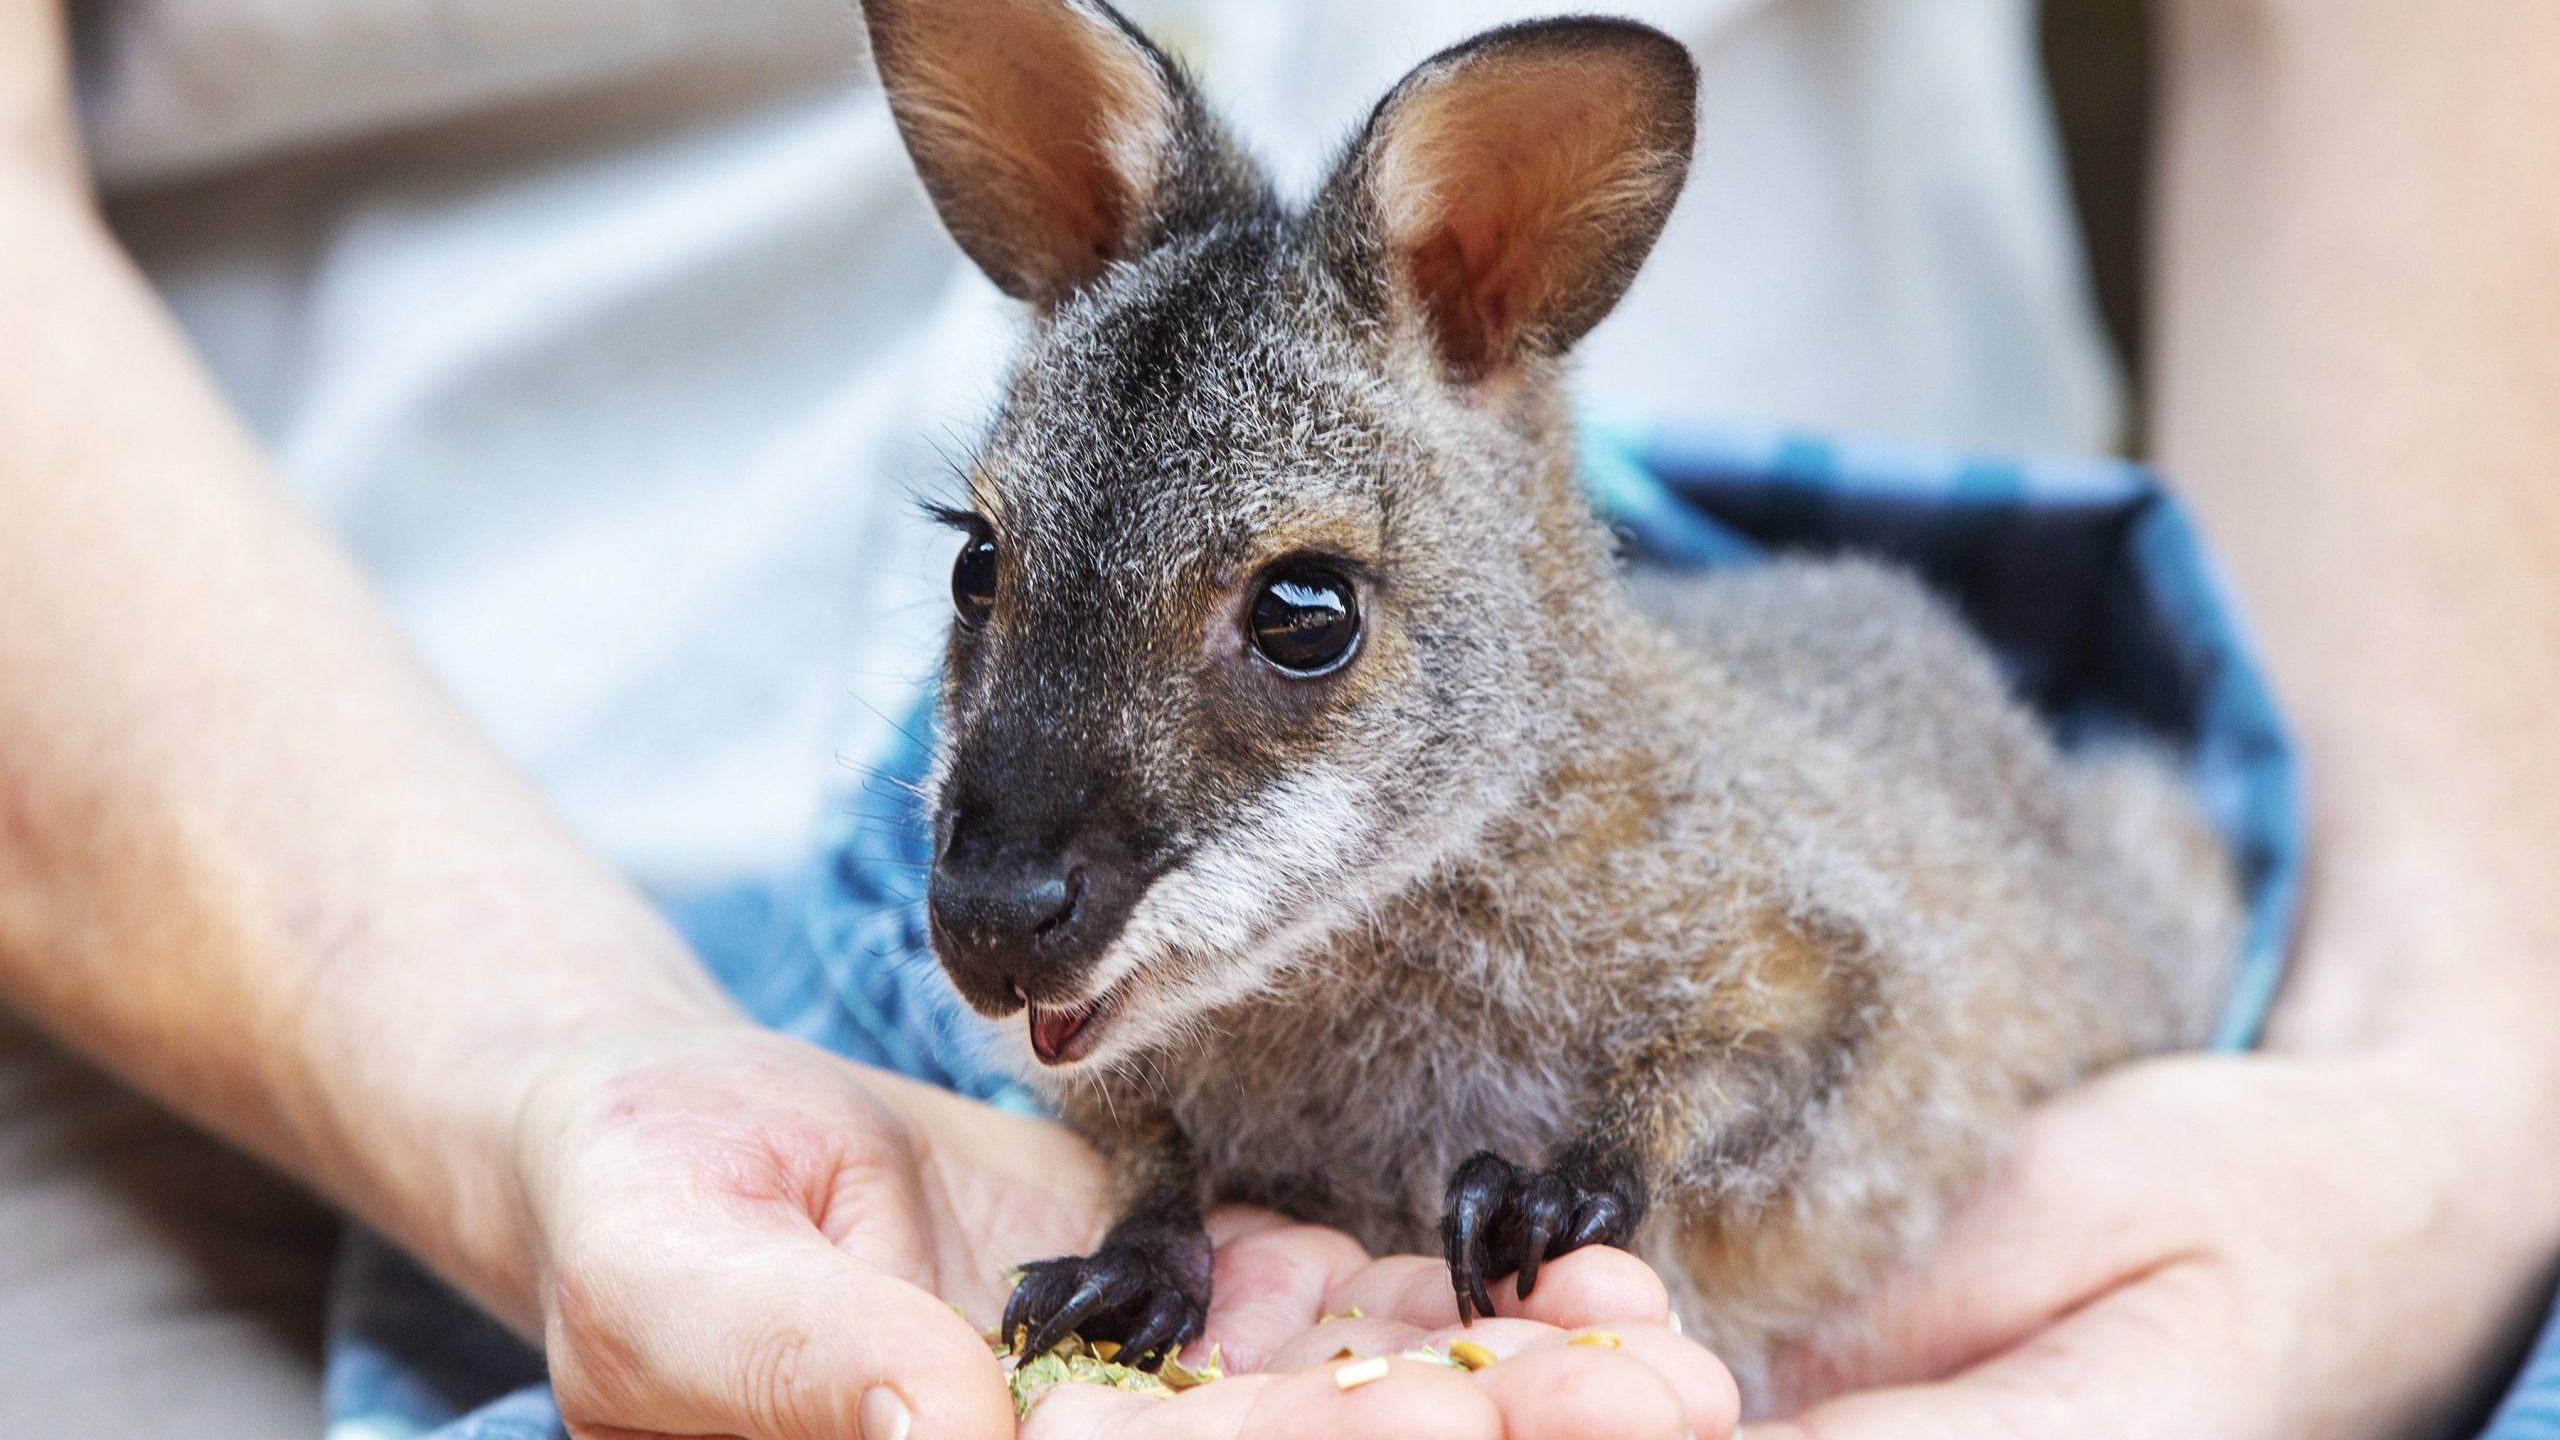 A red-necked wallaby joey is seen during a tour of the Taronga Zoo's Wildlife Hospital in Sydney, Australia, on Jan. 14, 2020. (Credit: Jenny Evans / Getty Images)